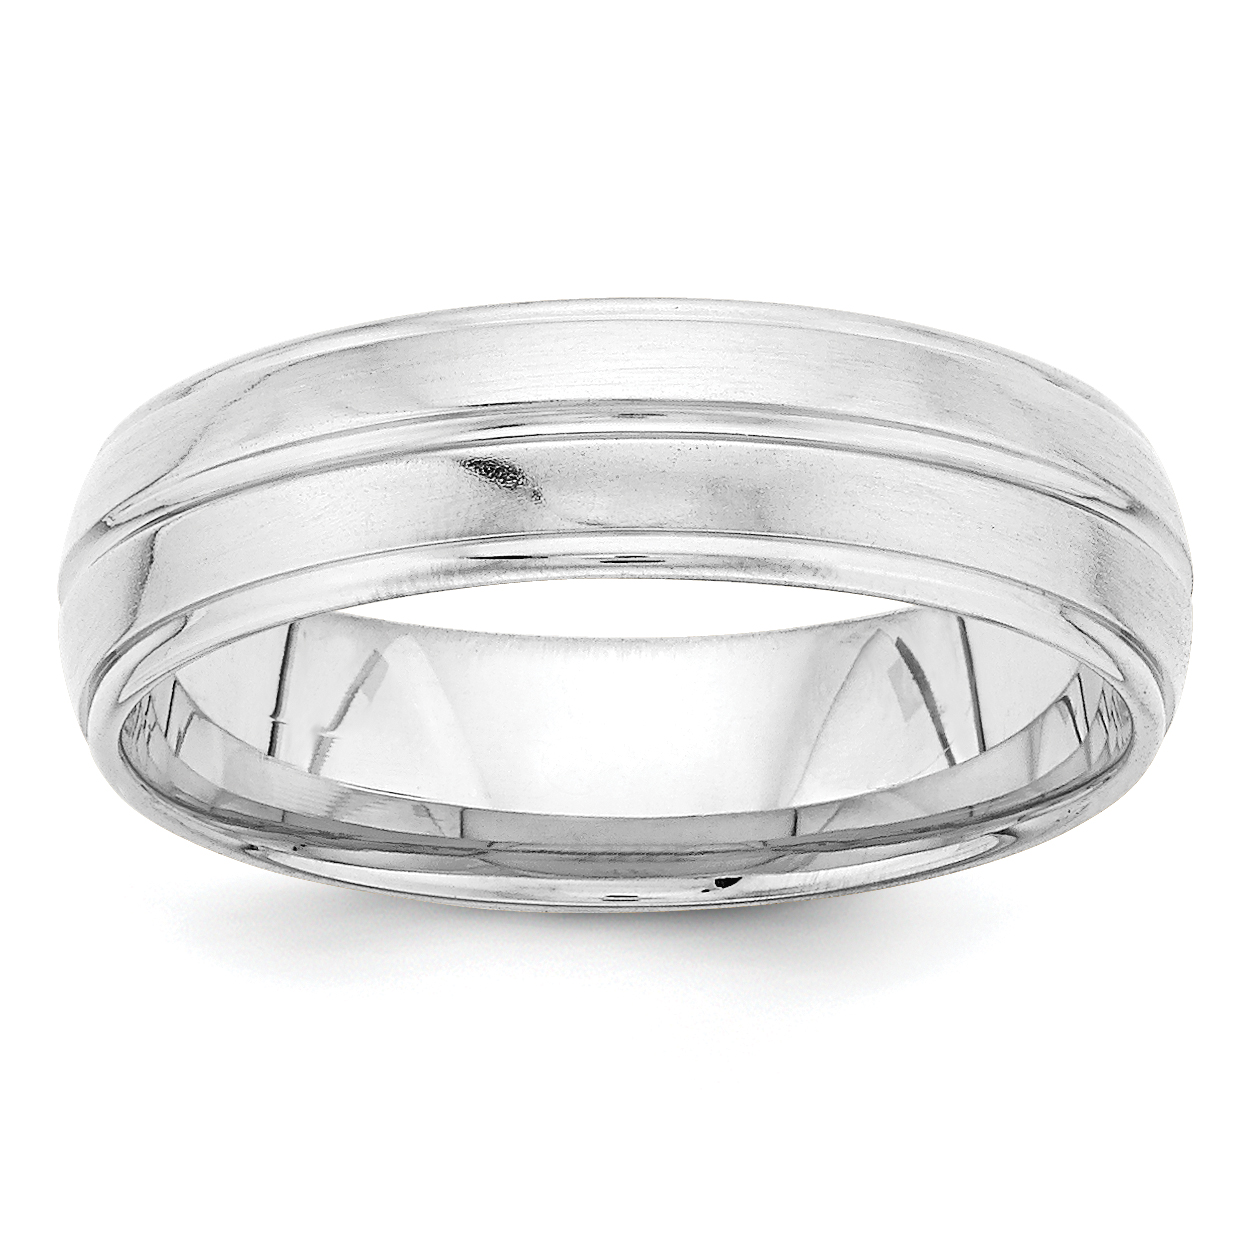 14K White Gold Standard Comfort Fit Fancy Band - image 2 de 2